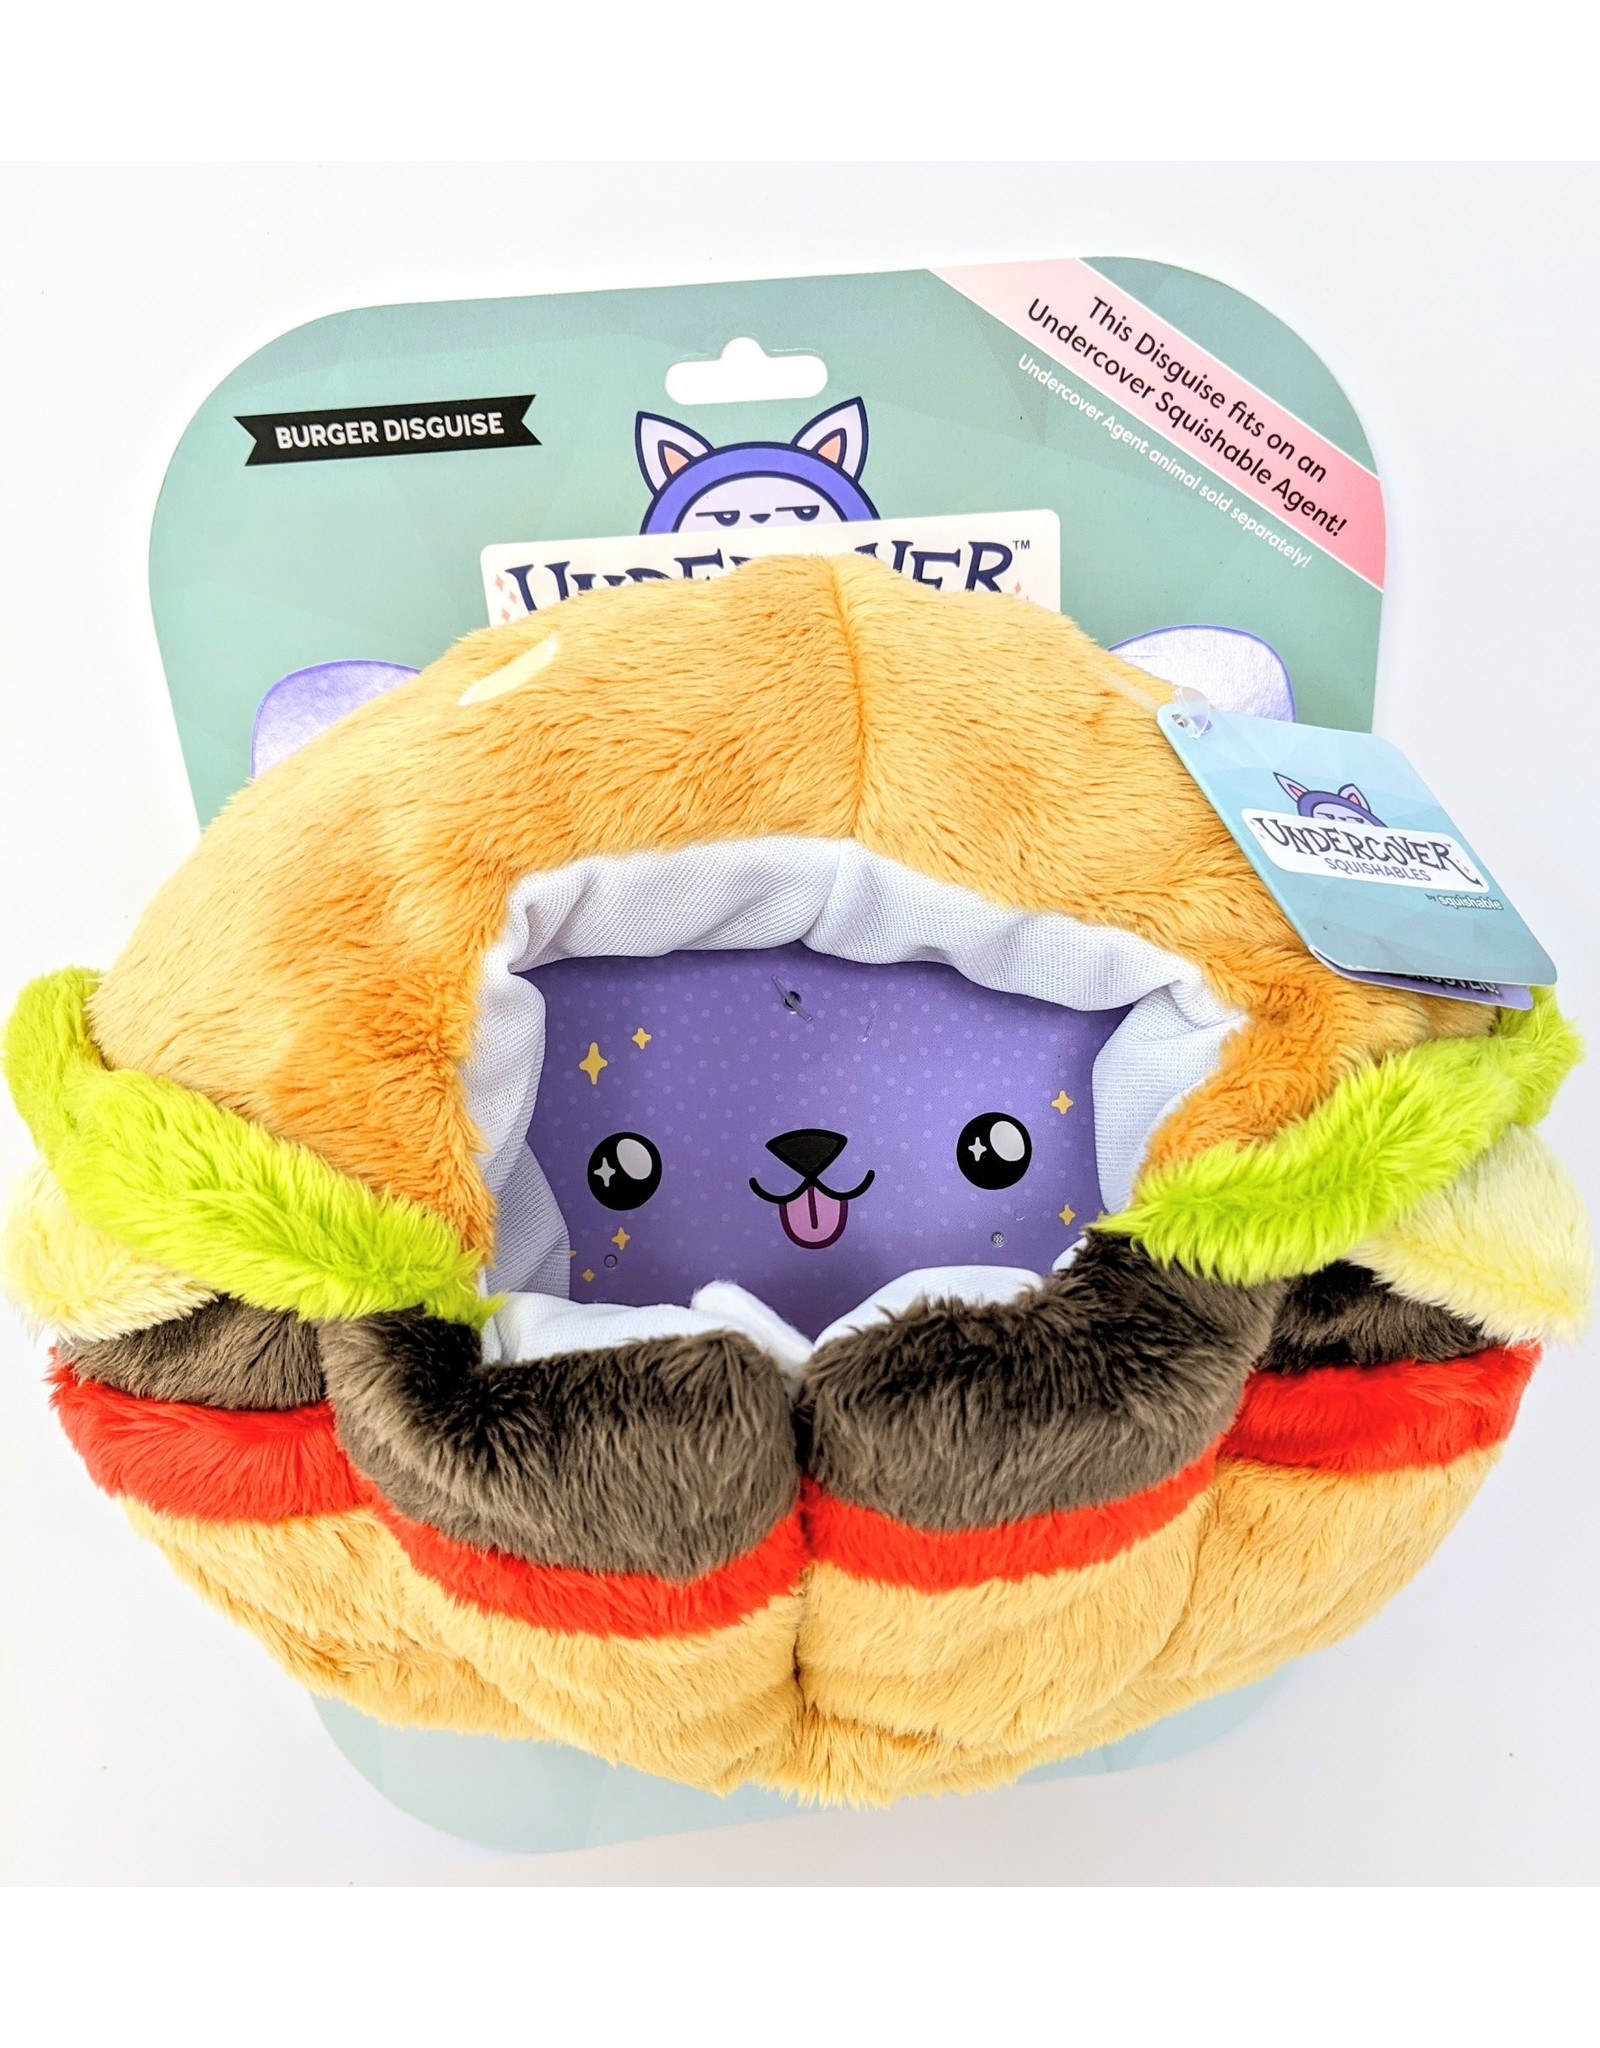 Squishable Undercover Disguise - Cheeseburger